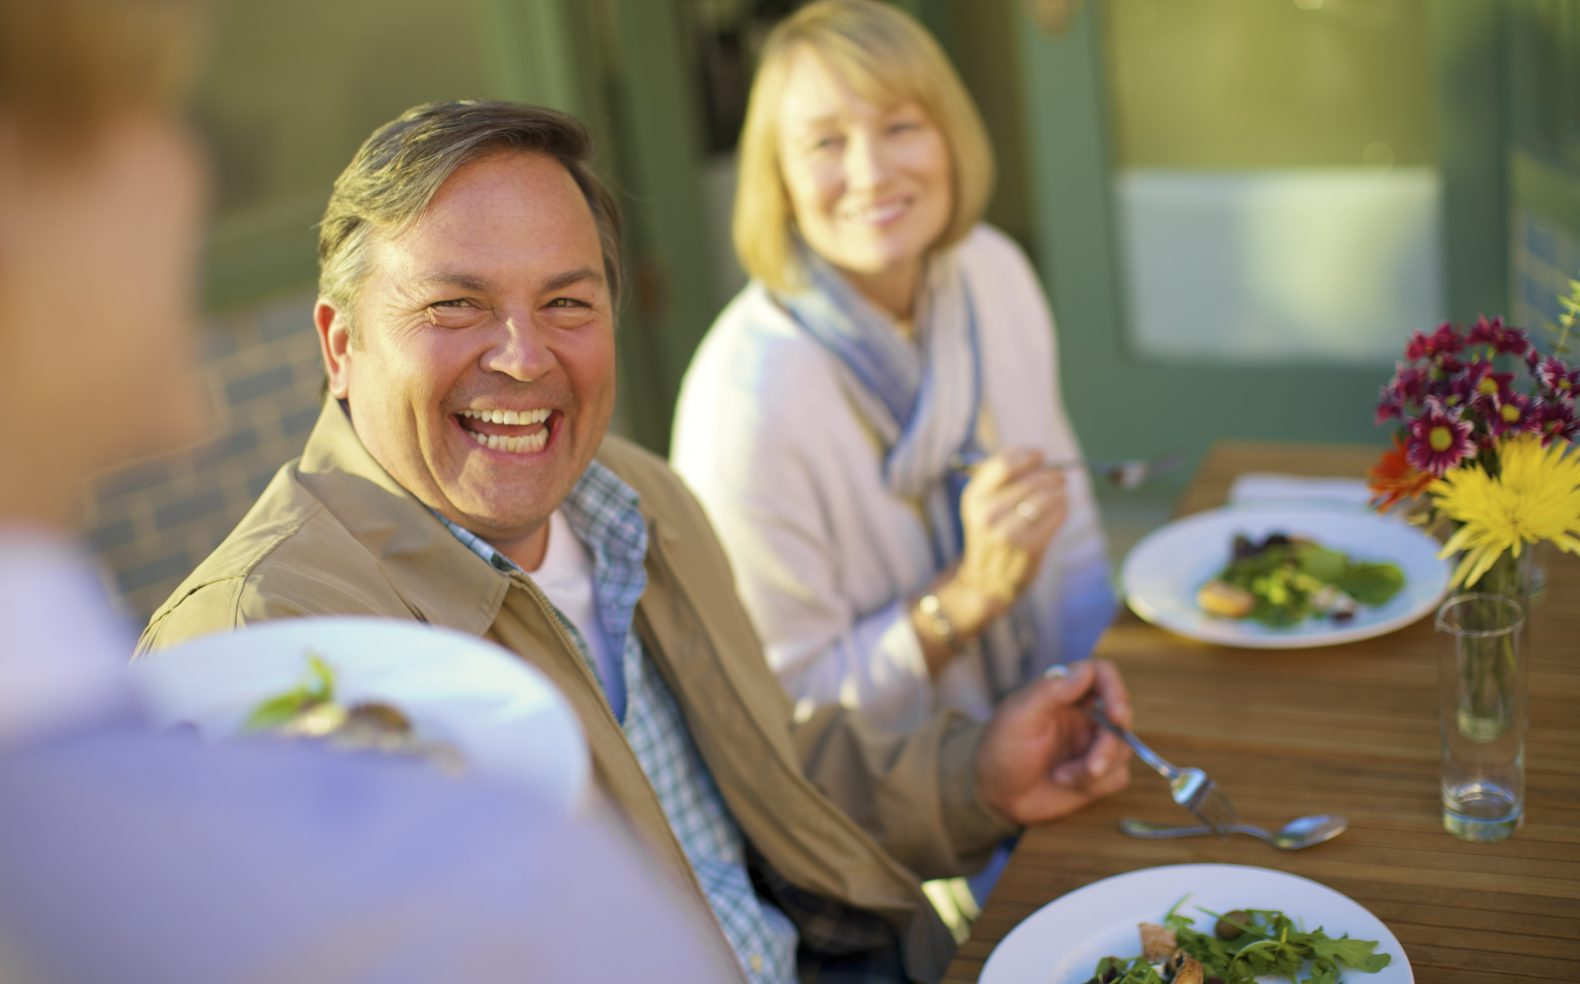 Professional photograph of a couple smiling while enjoying a summer salad